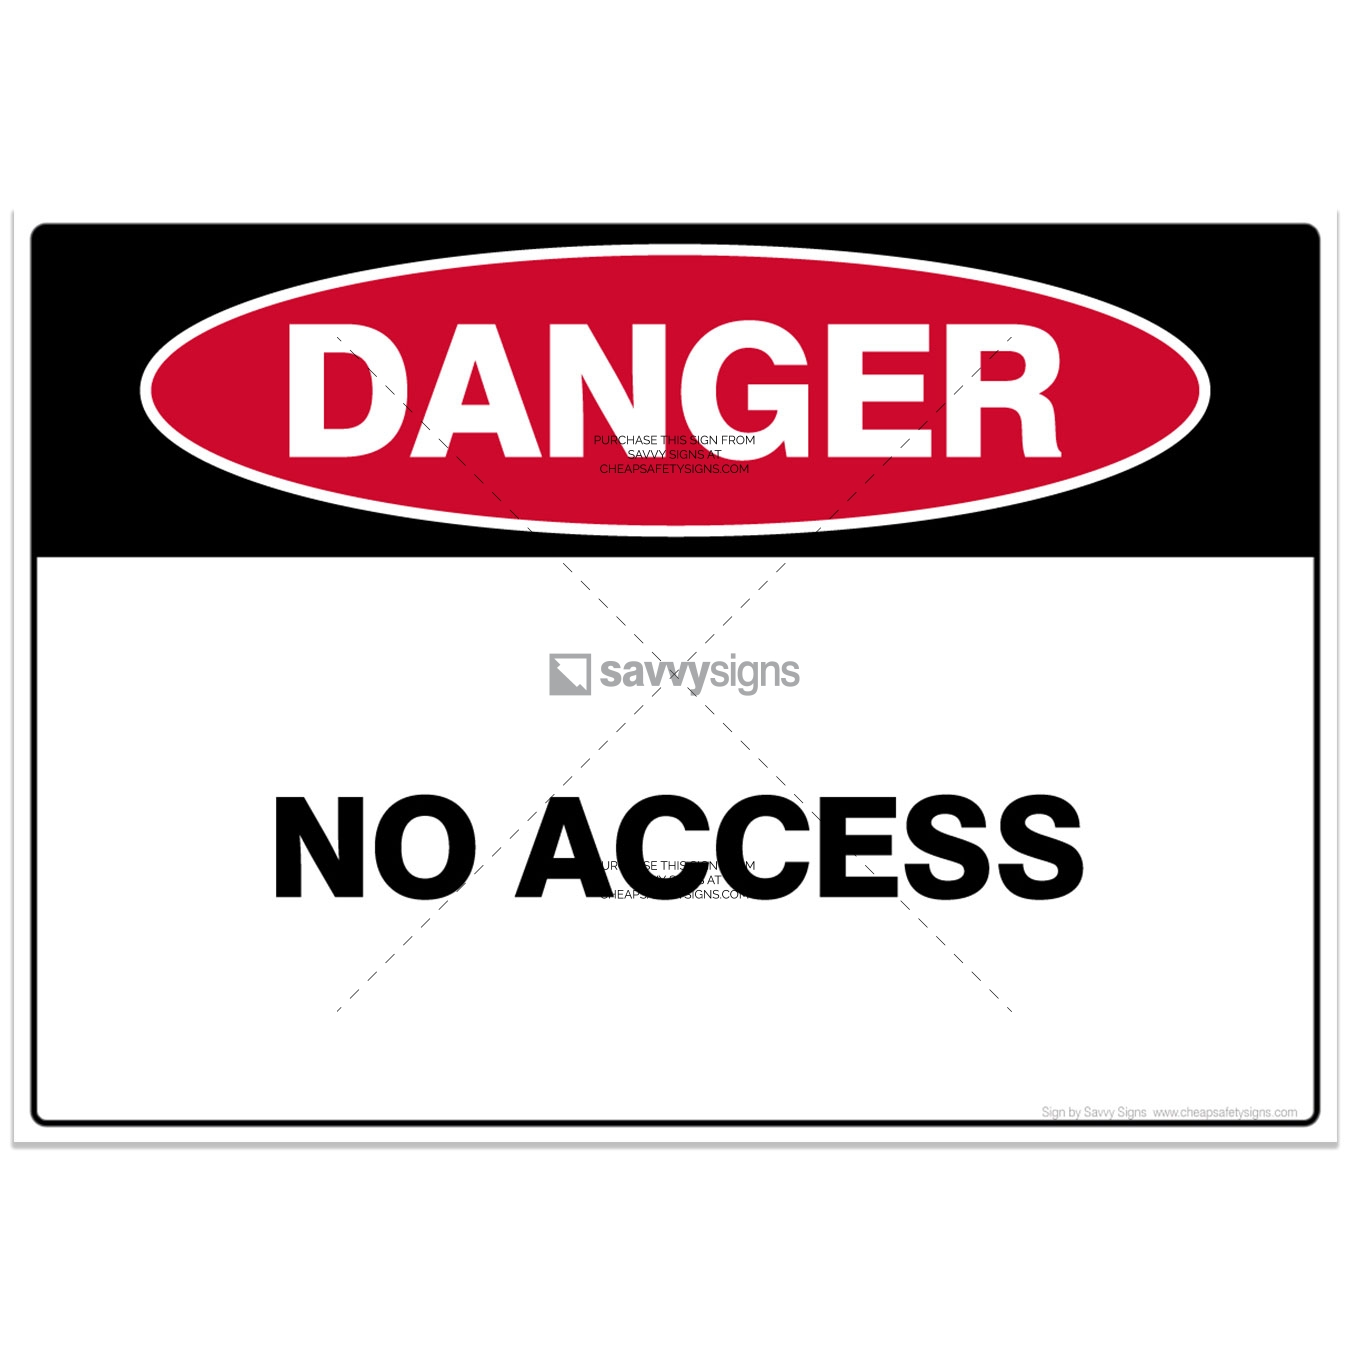 SSDAN3057-DANGER-Workplace-Safety-Signs_Savvy-Signs_v4.1